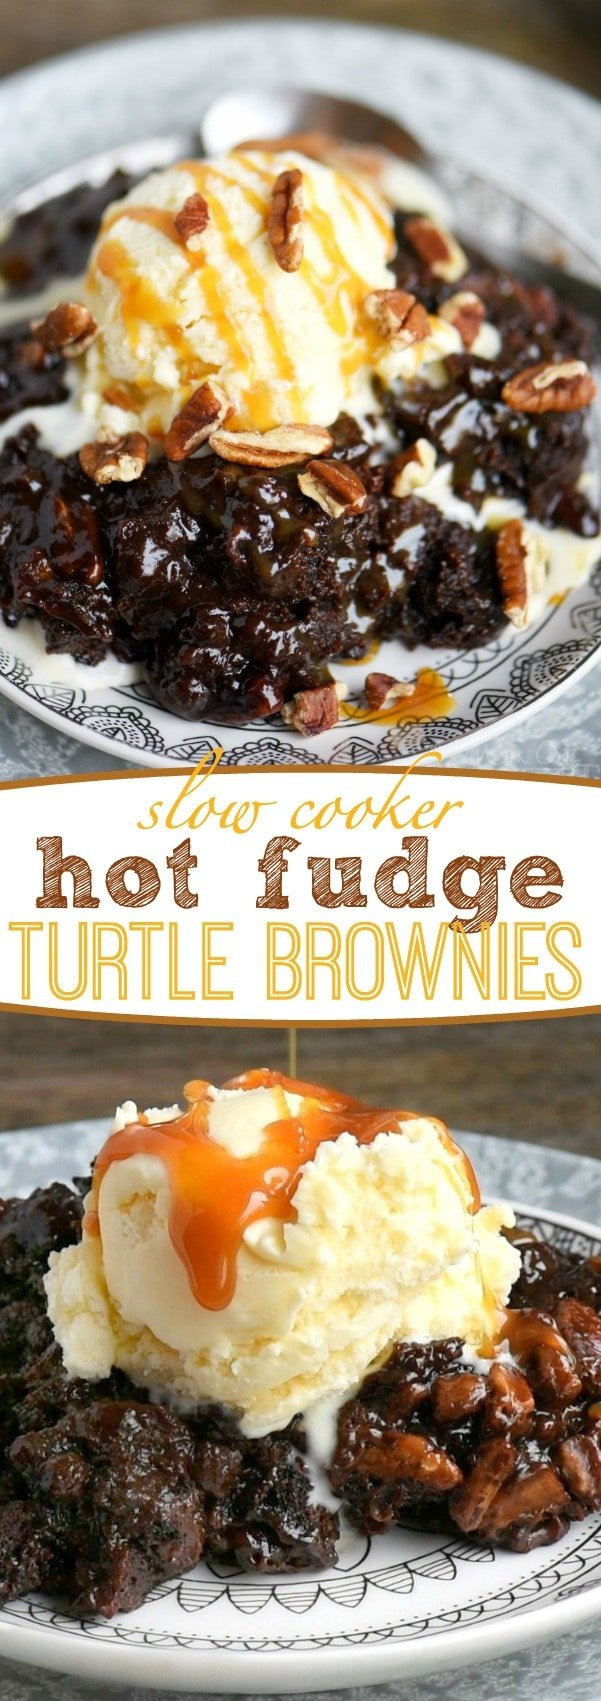 Fabulously gooey and outrageously delicious, these Slow Cooker Hot Fudge Turtle Brownies are going to rock your world! Hot fudge sauce, caramel, pecans, and gooey brownies come together for one irresistible dessert! // Mom On Timeout